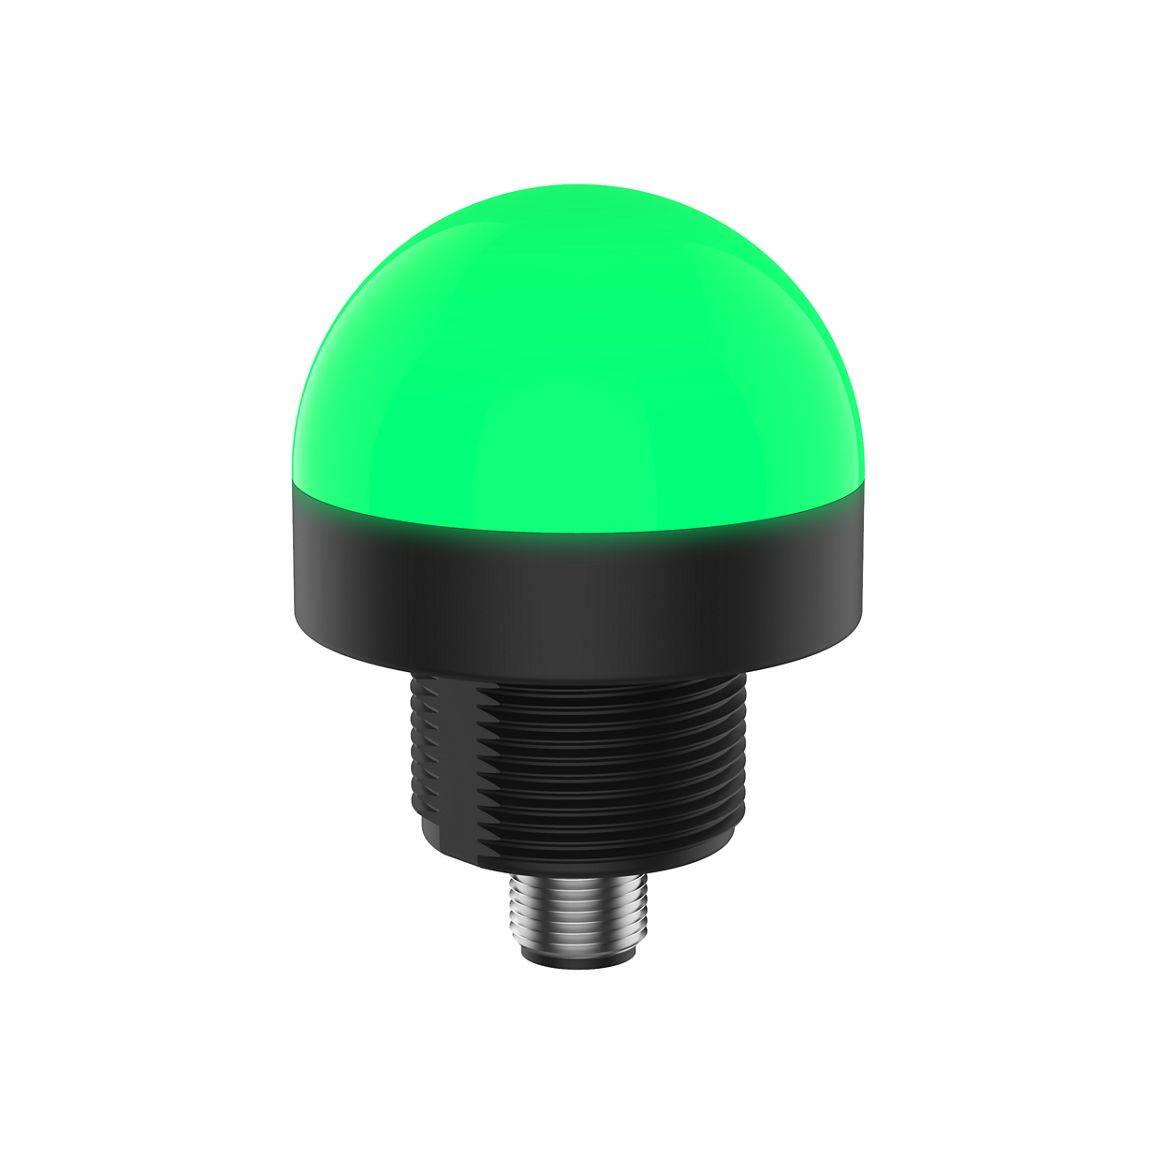 IP69K Rated LED Indicator Lights